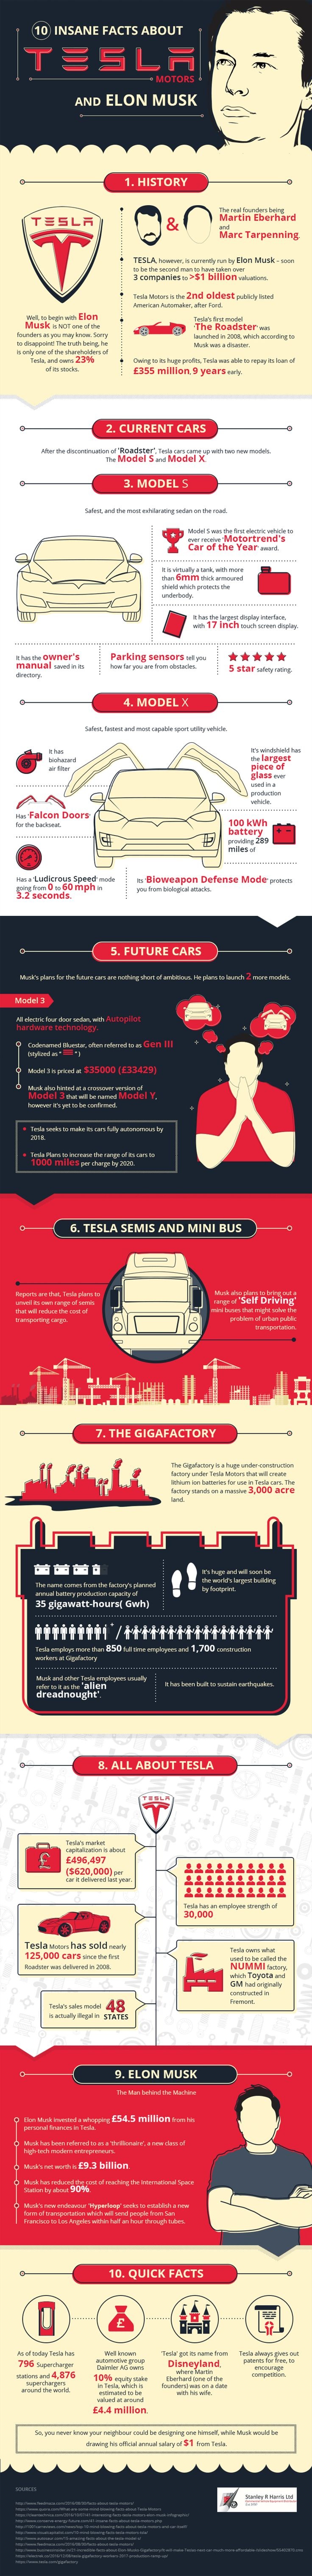 10 Insane Facts About Tesla Motors And Elon Musk #Infographic #Entrepreneur